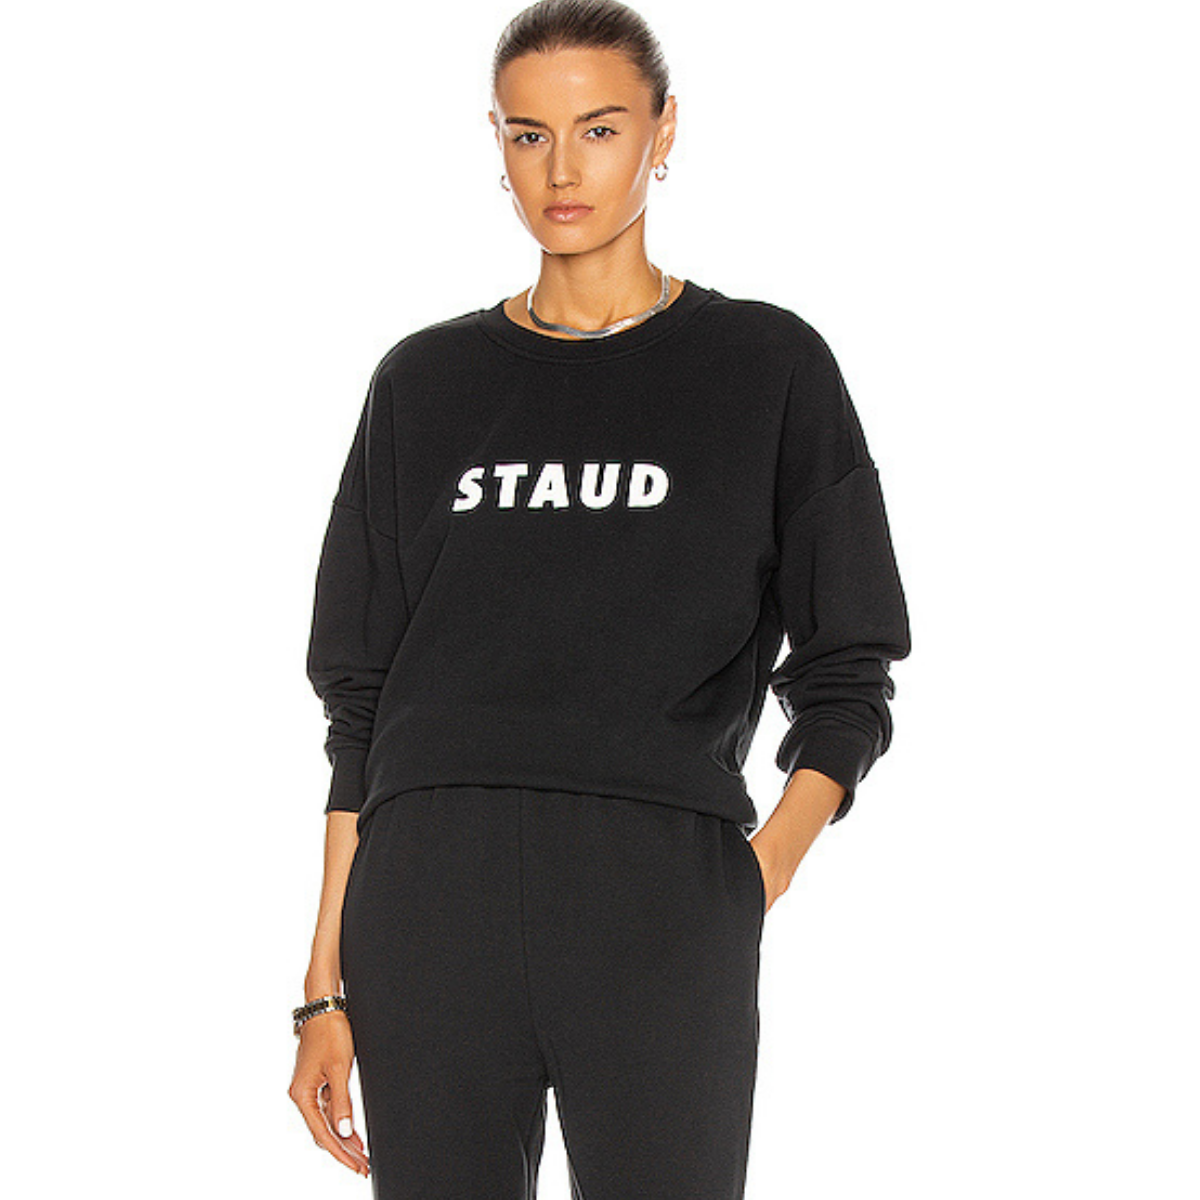 Staud classic cotton pullover sweatshirt with STAUD logo in contrast lettering